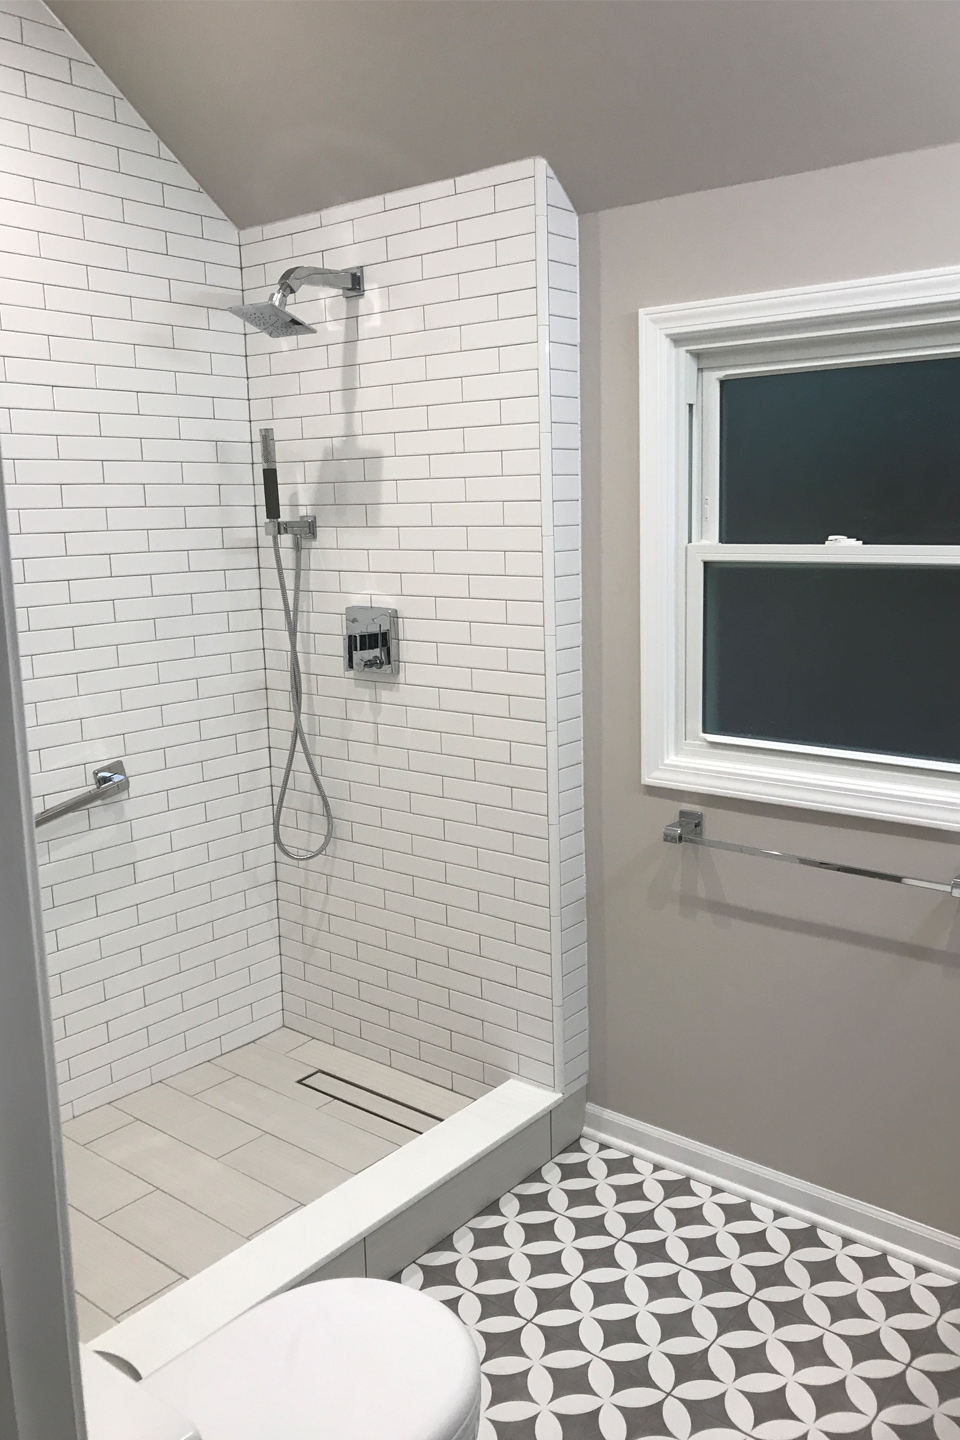 Tub to Shower Conversion  Tub to Shower Conversion Cost